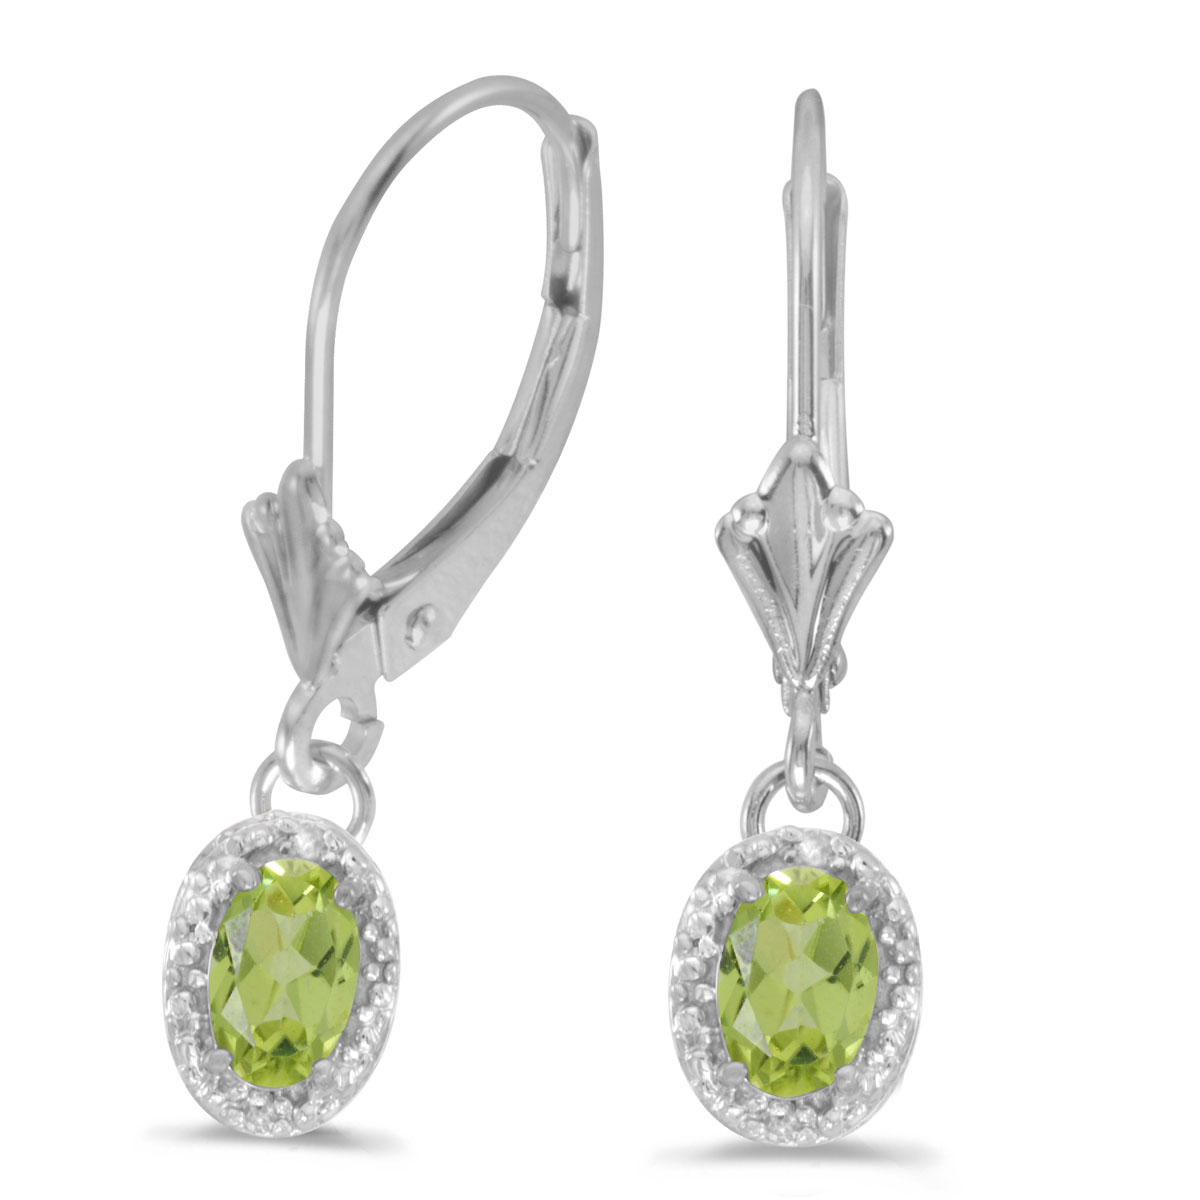 Beautiful 10k white gold leverback earrings with pretty 6x4 mm peridots complemented with bright ...